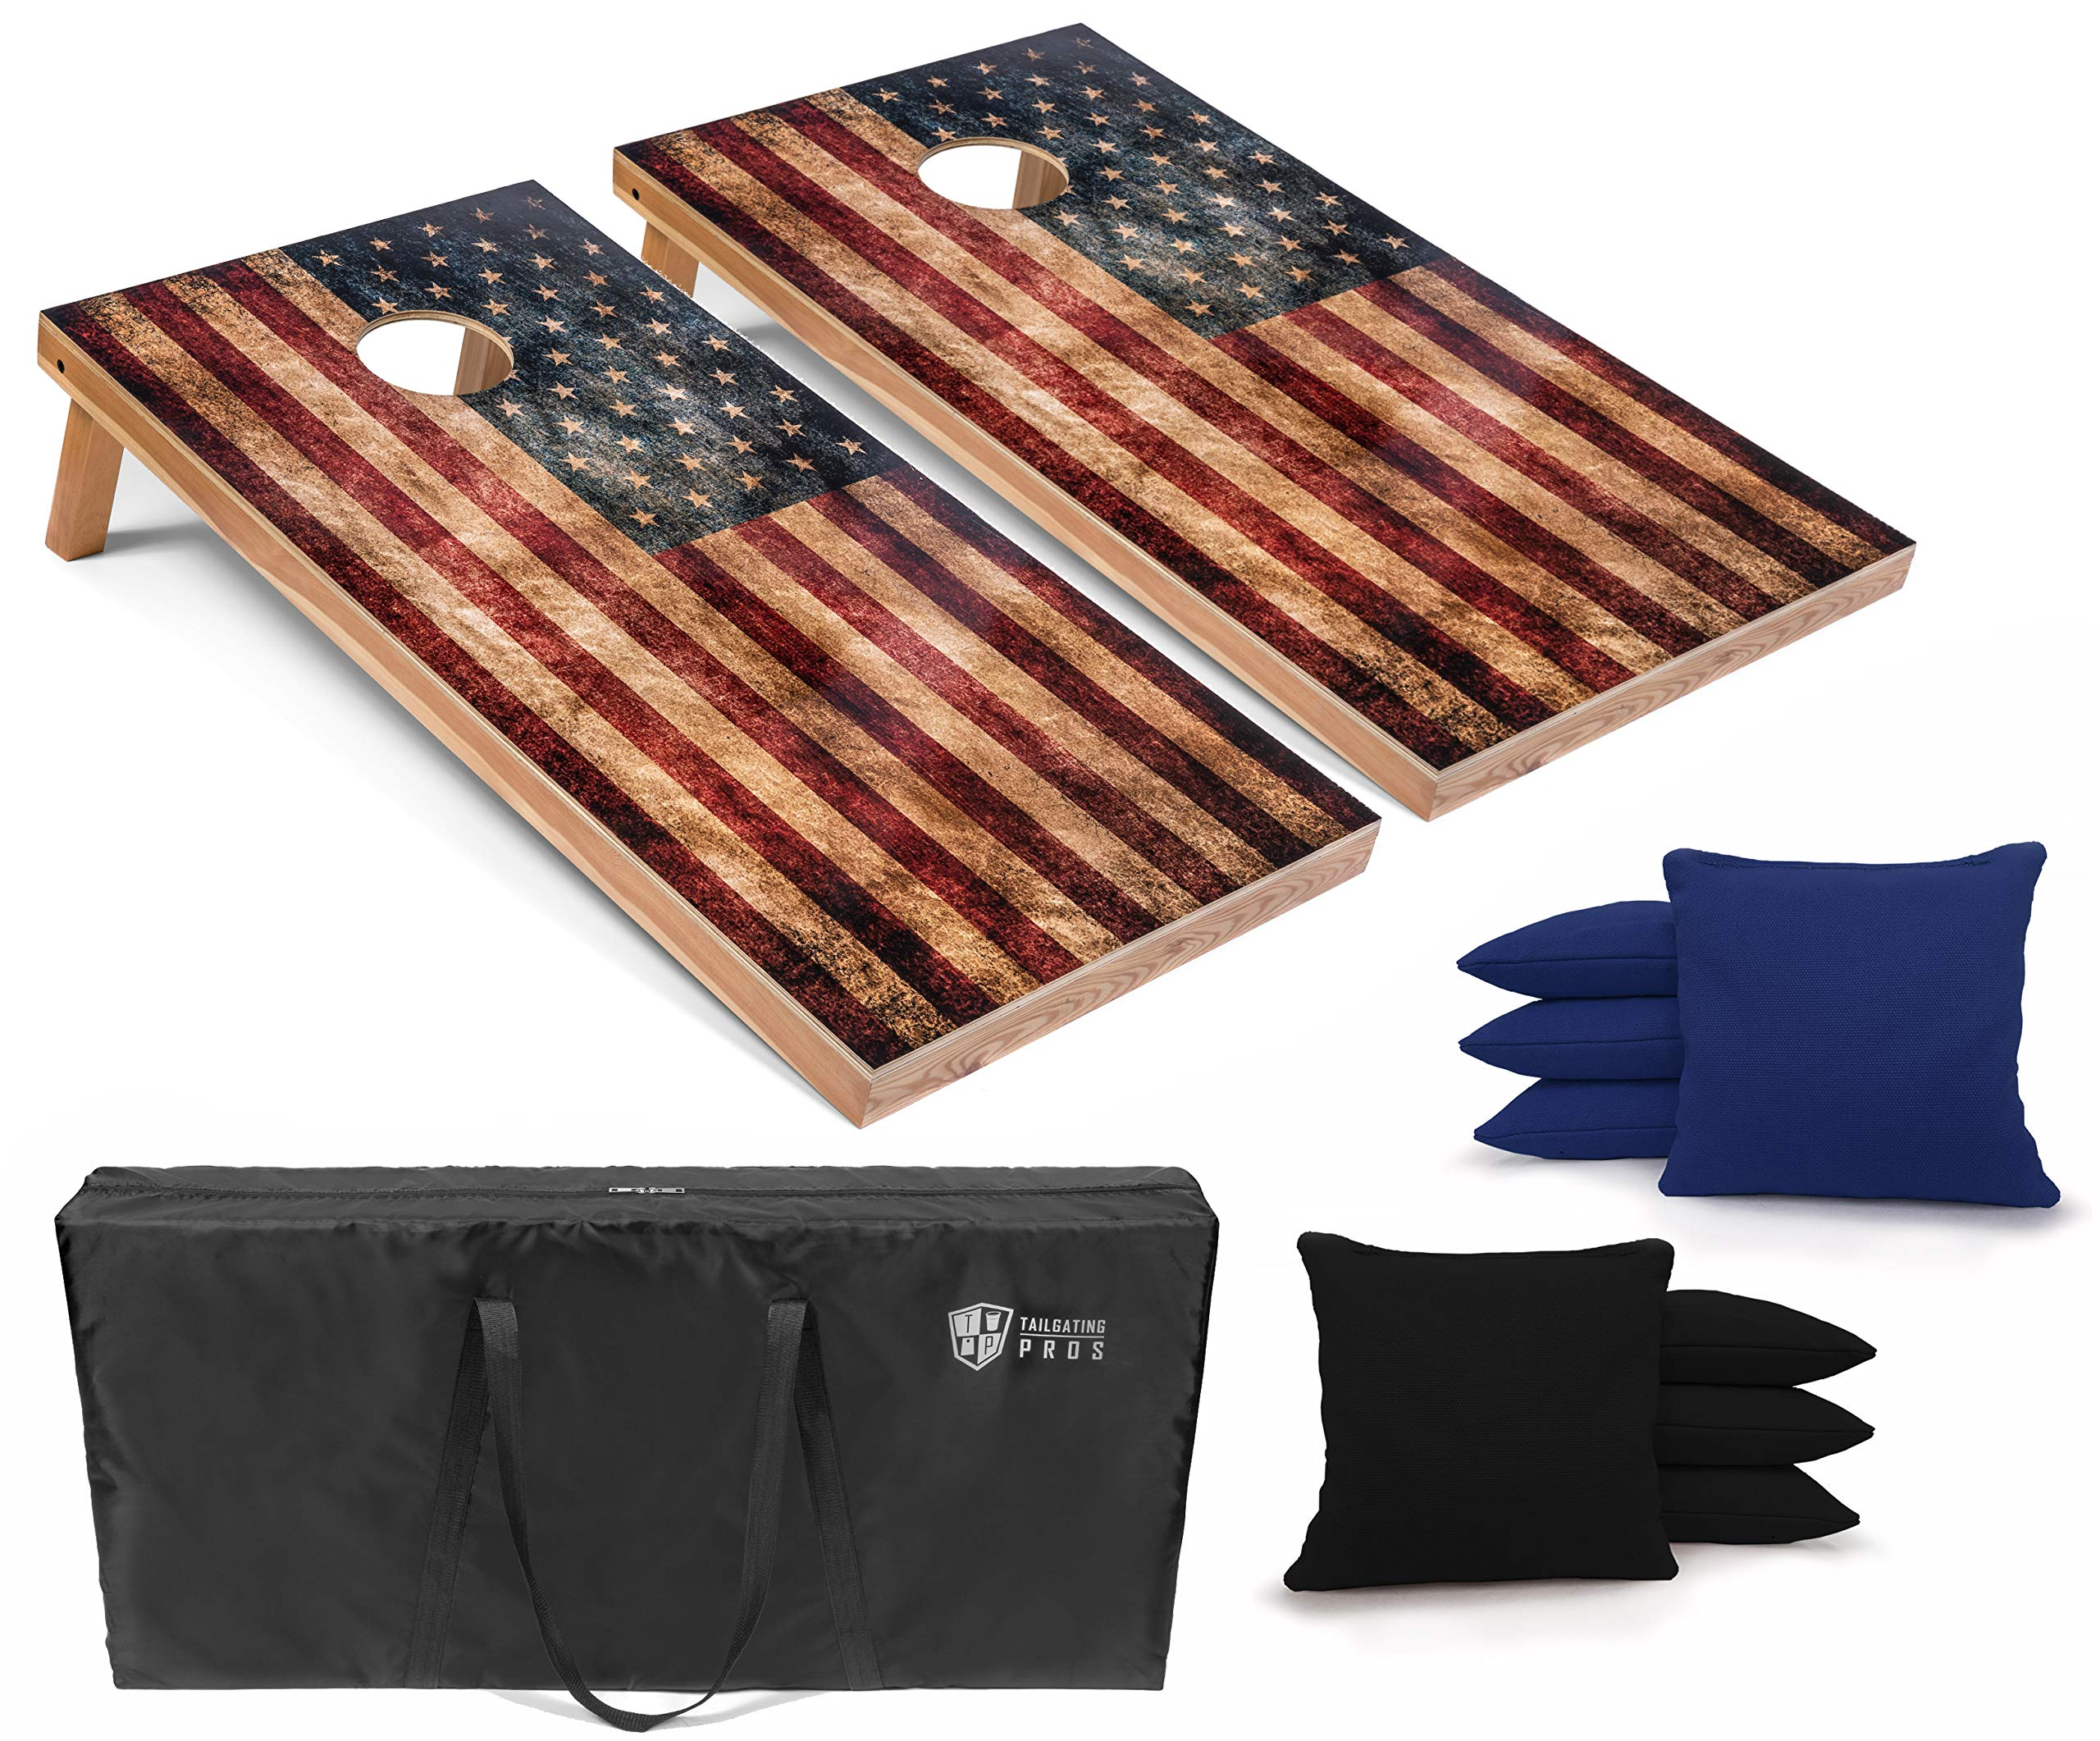 Tailgating Pros Rustic American Flag Cornhole Boards w/Bean Bags - 4'x2' Distressed Flag Cornhole Game w/Carrying Case & Corn Hole Bags by Tailgating Pros